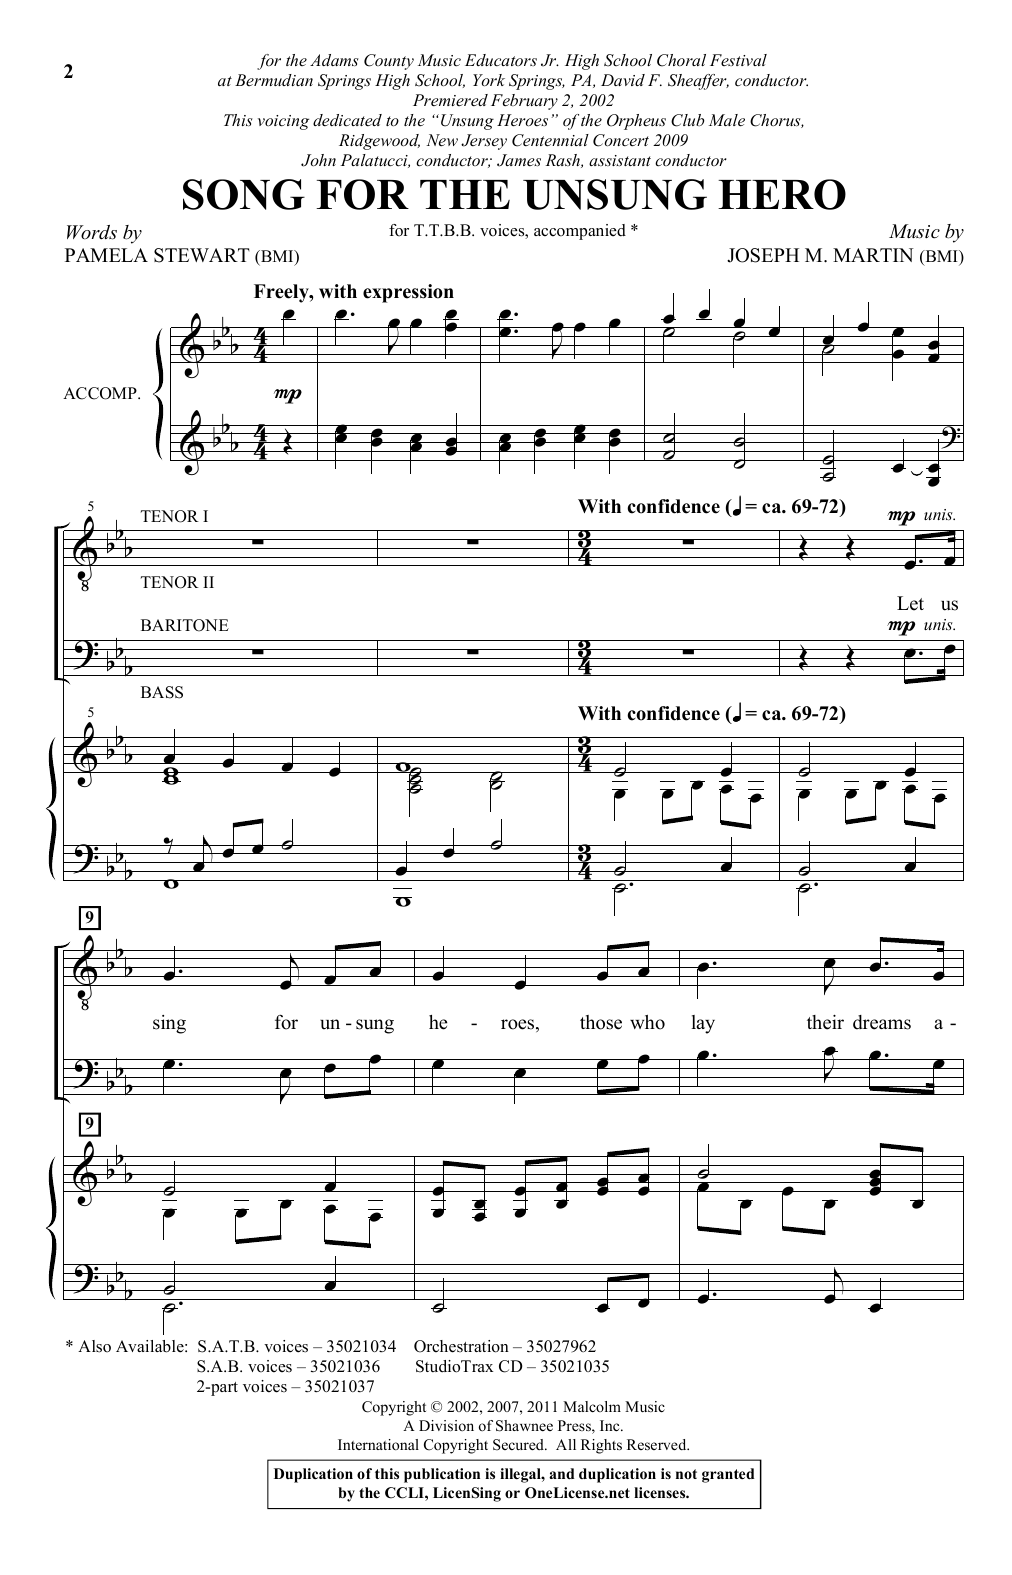 Pamela Stewart & Joseph M. Martin Song For The Unsung Hero sheet music notes and chords. Download Printable PDF.